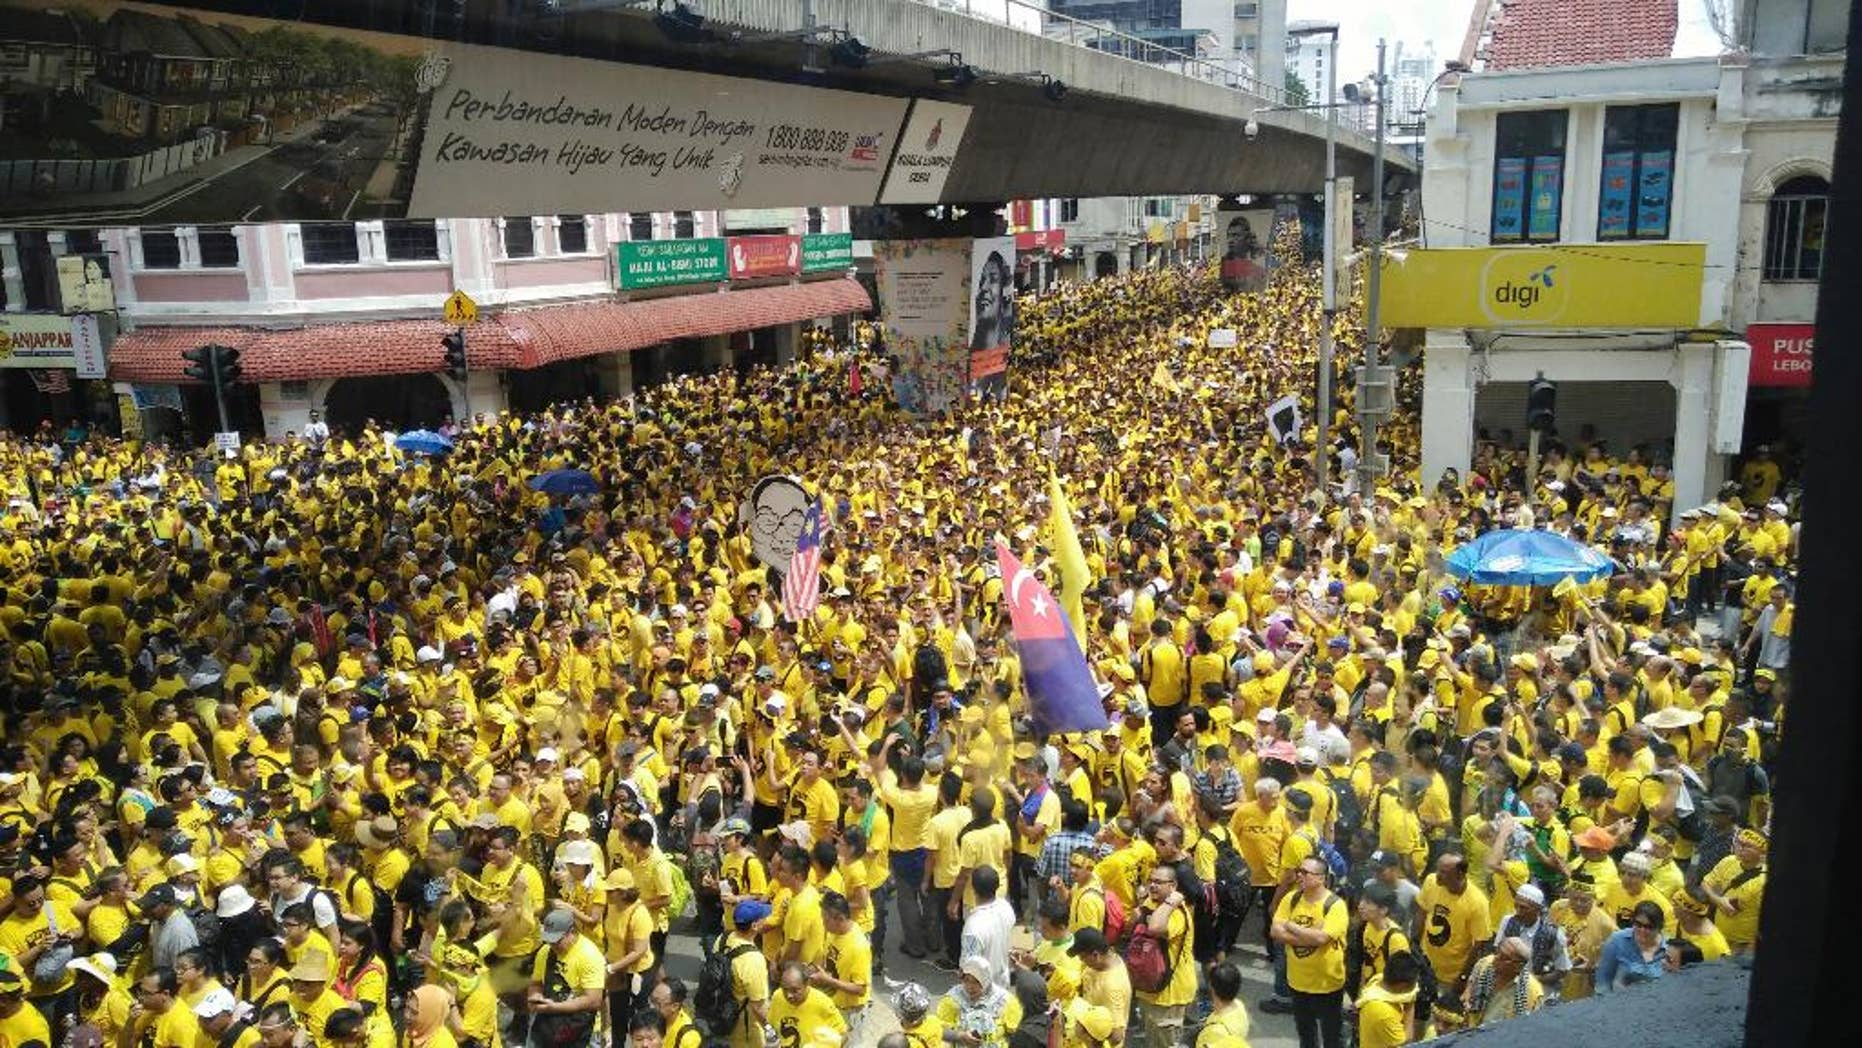 Protesters occupy a street during a rally in downtown Kuala Lumpur, Malaysia, Saturday, Nov. 19, 2016. Tens of thousands of yellow-shirt protesters rallied Saturday in Kuala Lumpur seeking Malaysian Prime Minister Najib Razak's resignation over a financial scandal, undeterred by a police ban and the arrest of more than a dozen activists. (AP Photo/Forest Chew)